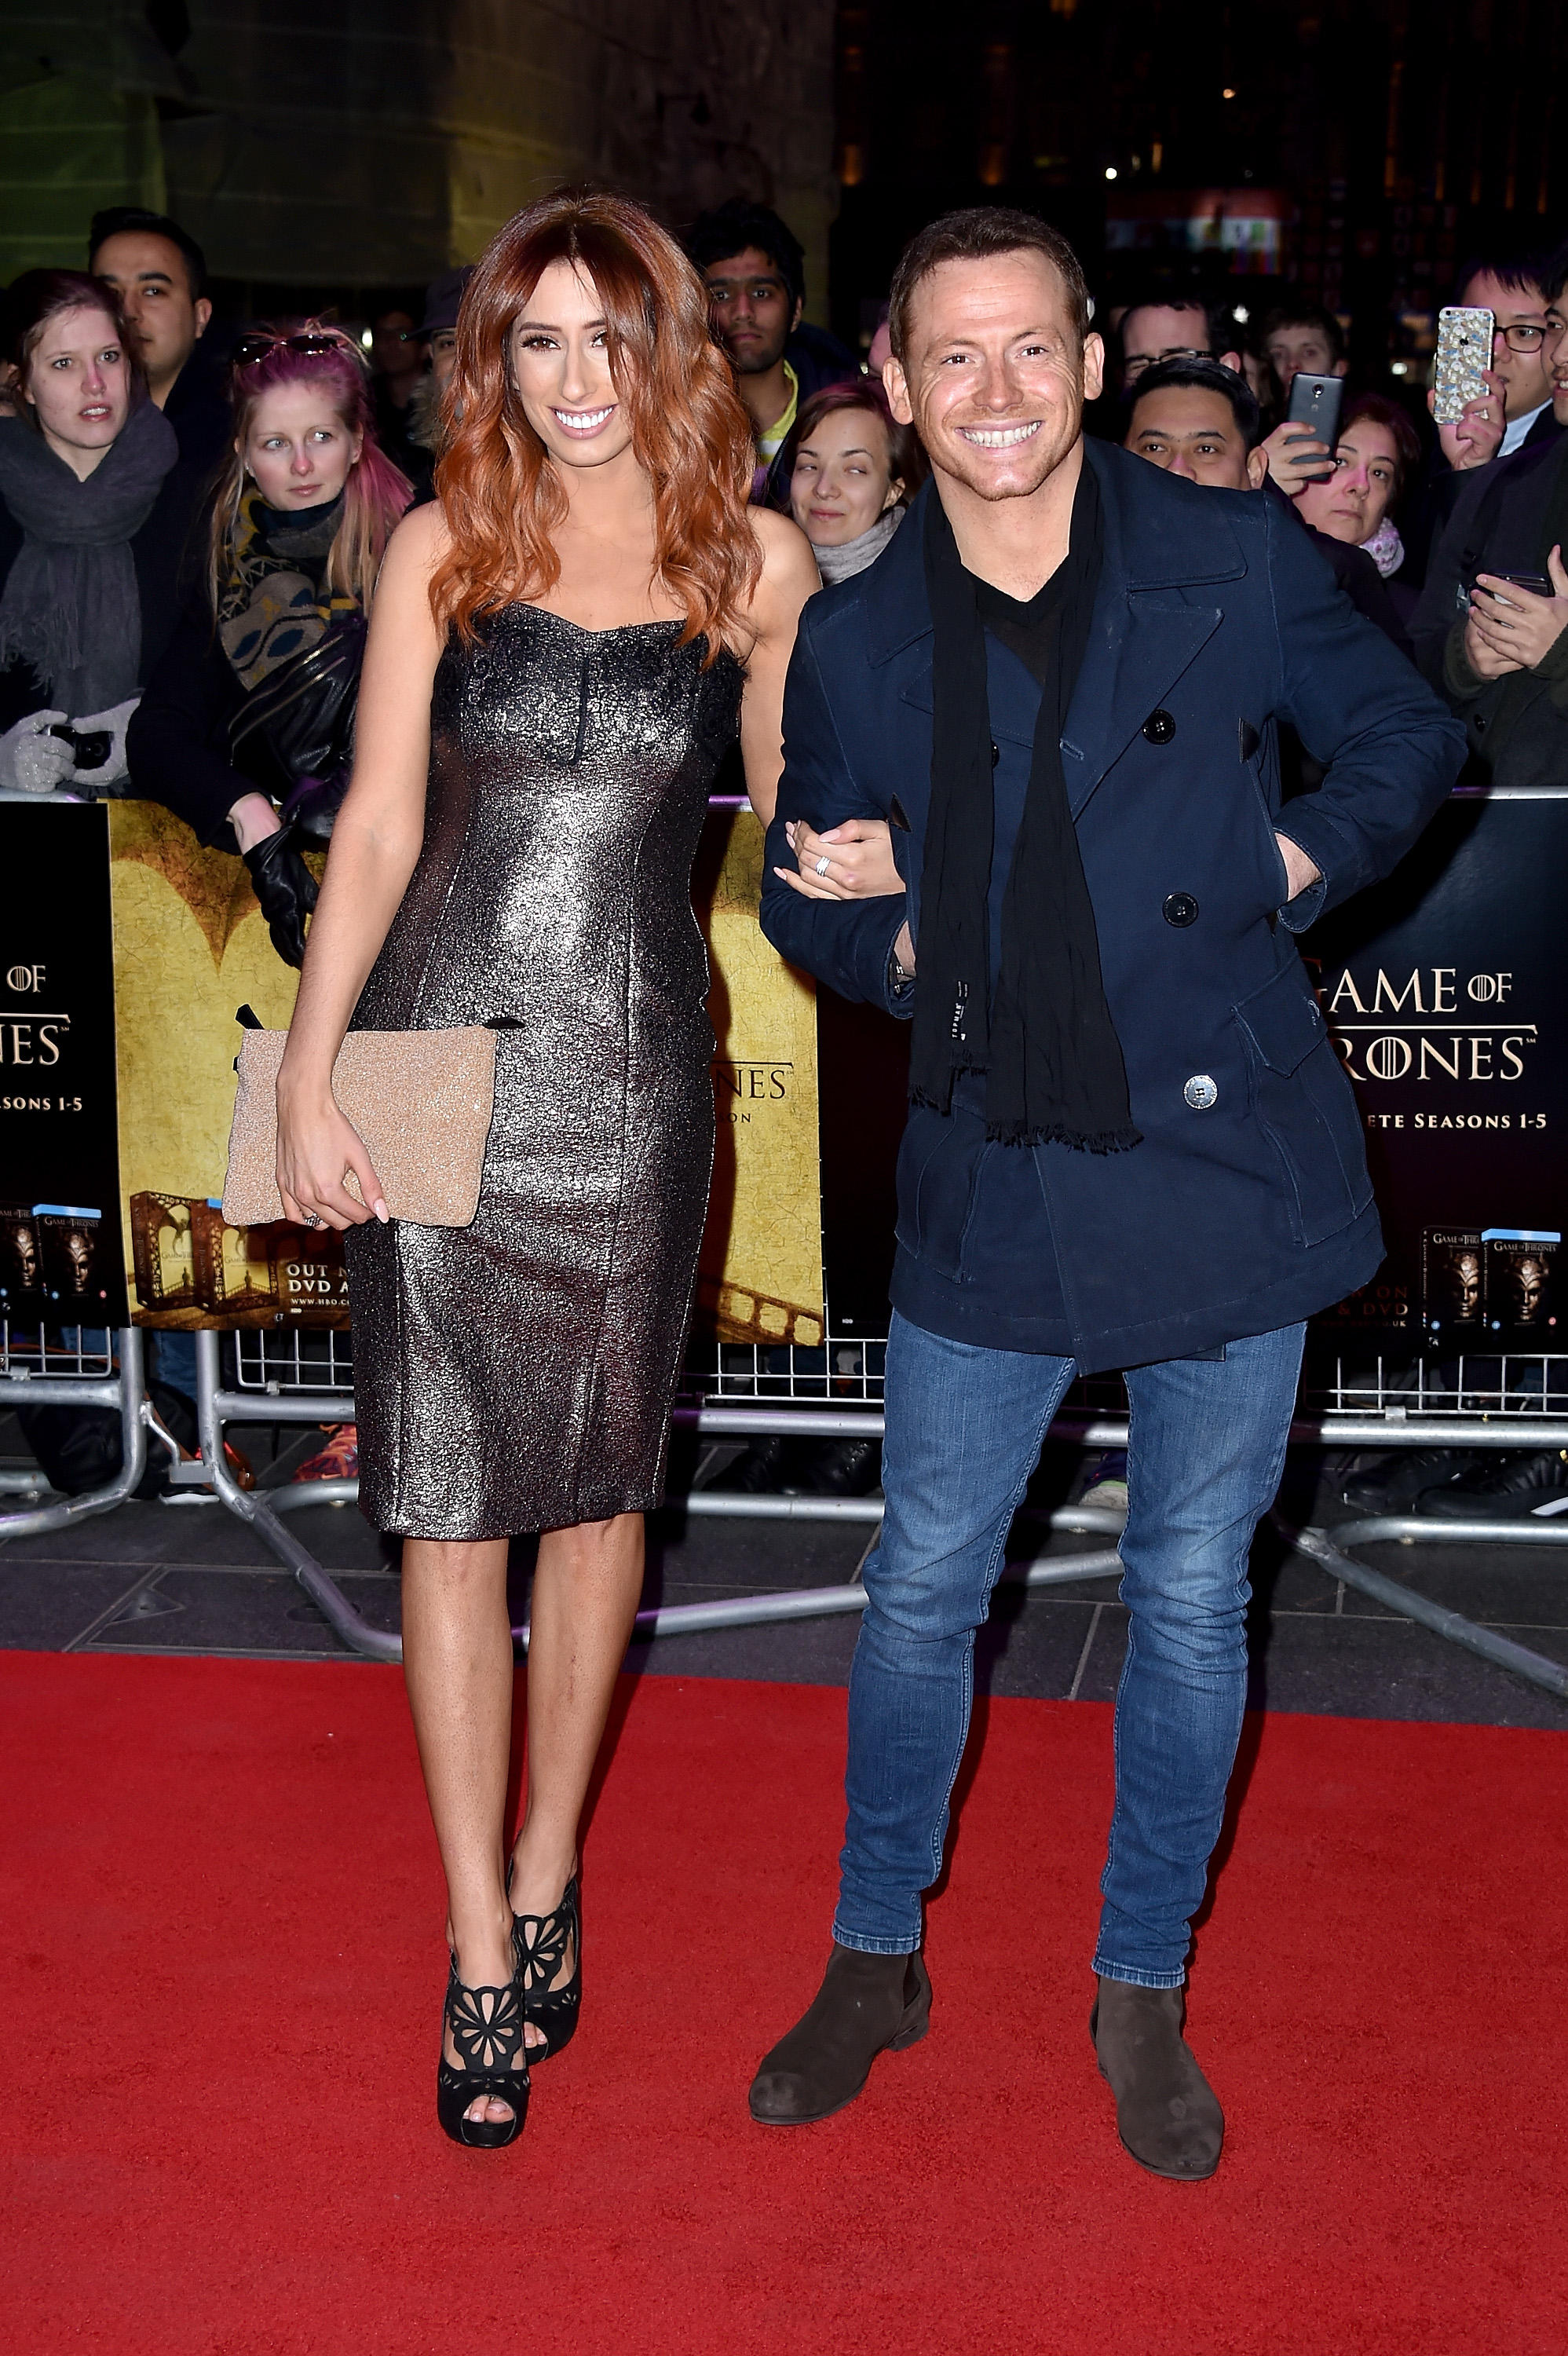 Stacey Solomon & Joe Swash